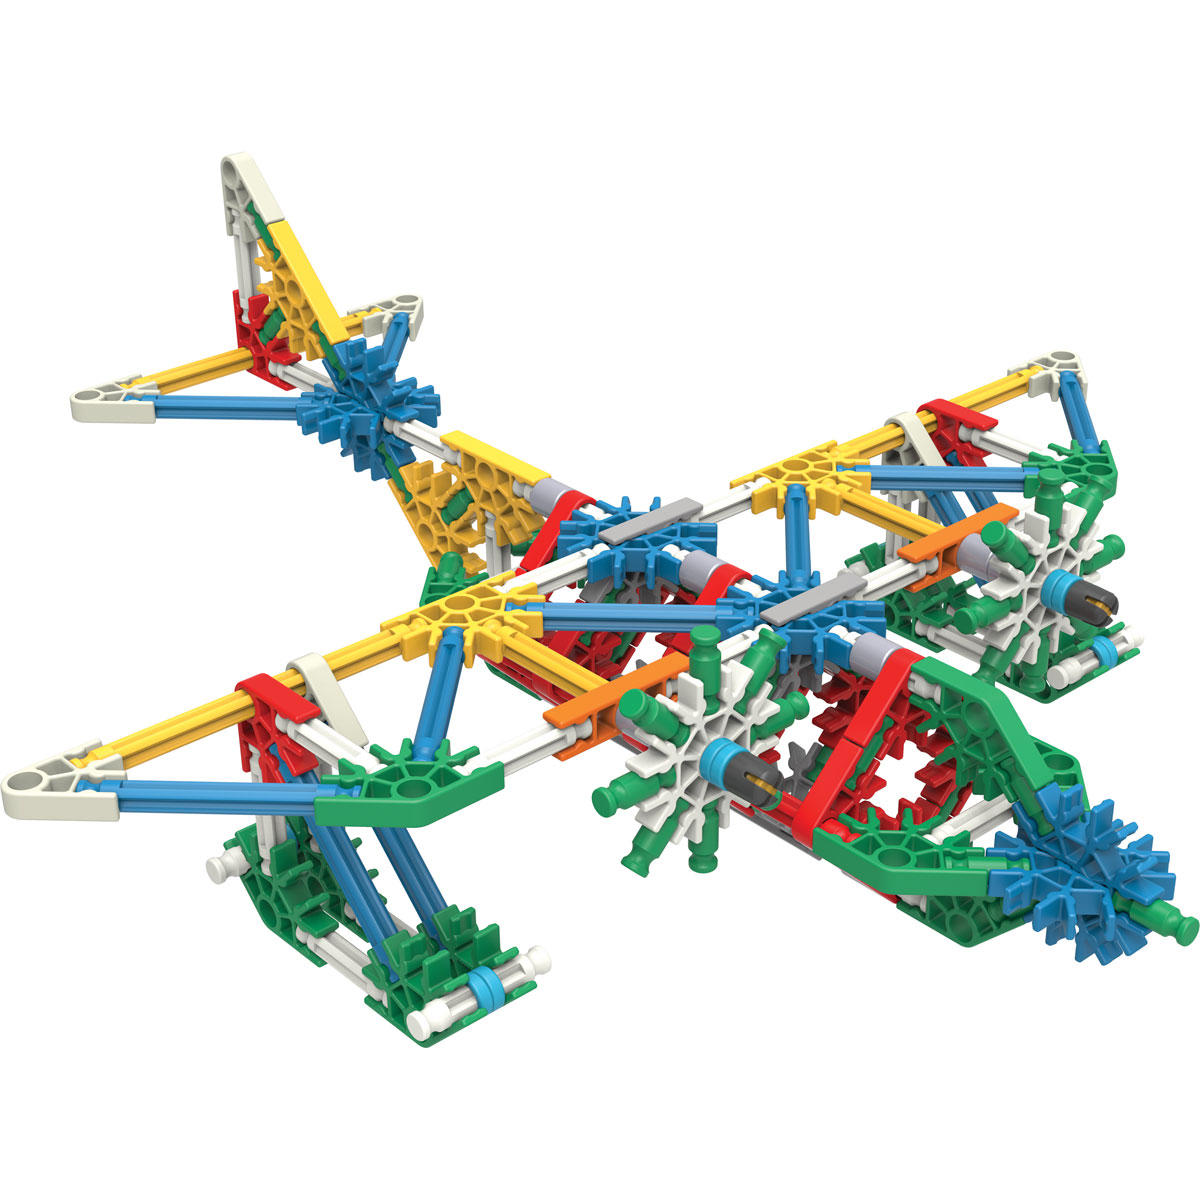 cool remote control planes with K Nex 70 Model Building Set 705 Pieces Knex Education Kx13419 Dhkx13419 5721 on Largest Lego Ship Ever Built Is Bigger Than Three Queen Sized Beds as well Everearth Bamboo Letter P Pig besides Building Foam Rc Airplanes besides Watch in addition Punk Student Blows Smoke In Teachers Face.